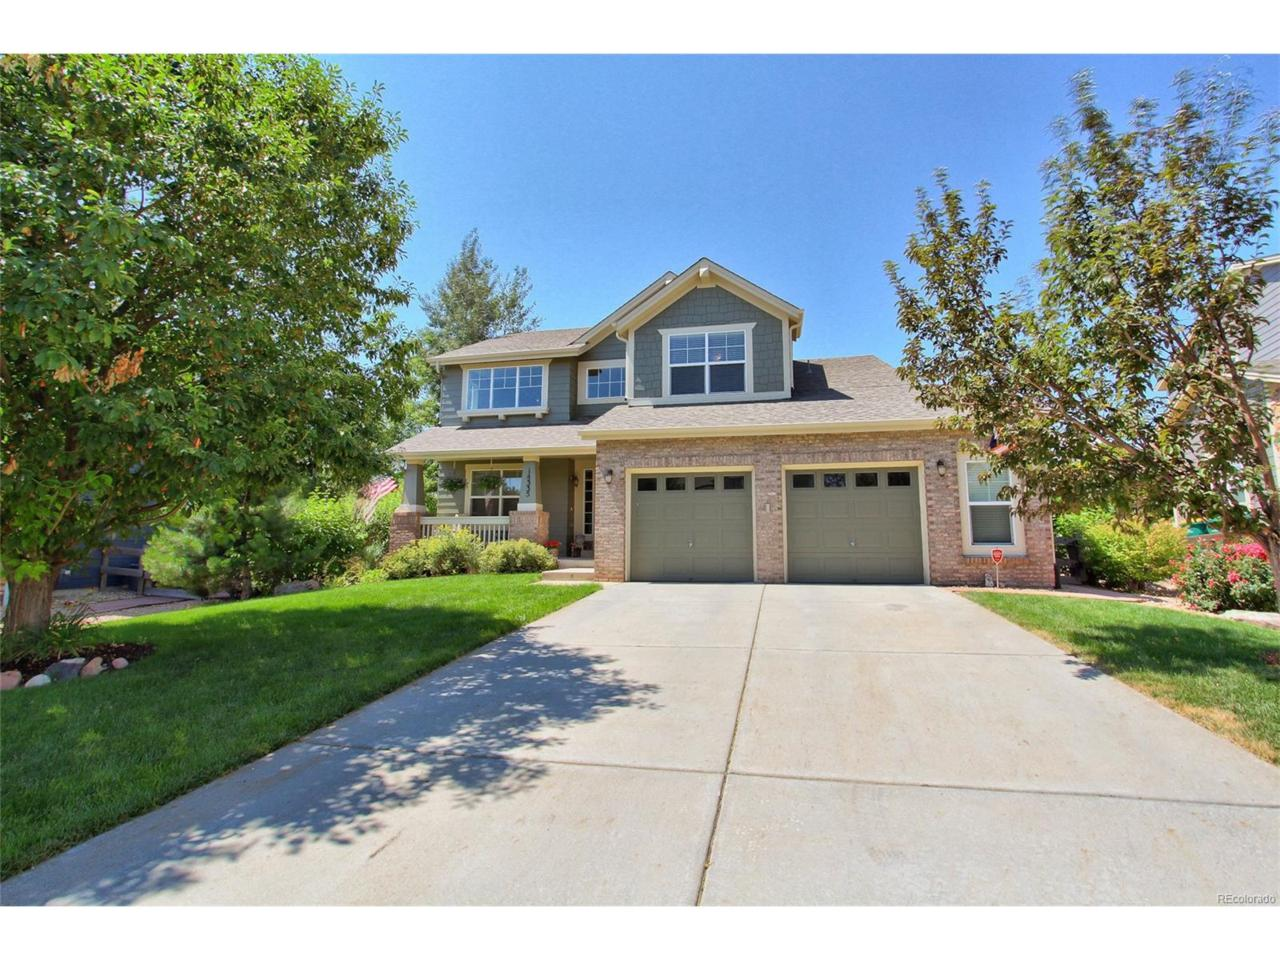 14335 Lakeview Lane, Broomfield, CO 80023 (MLS #9115512) :: 8z Real Estate